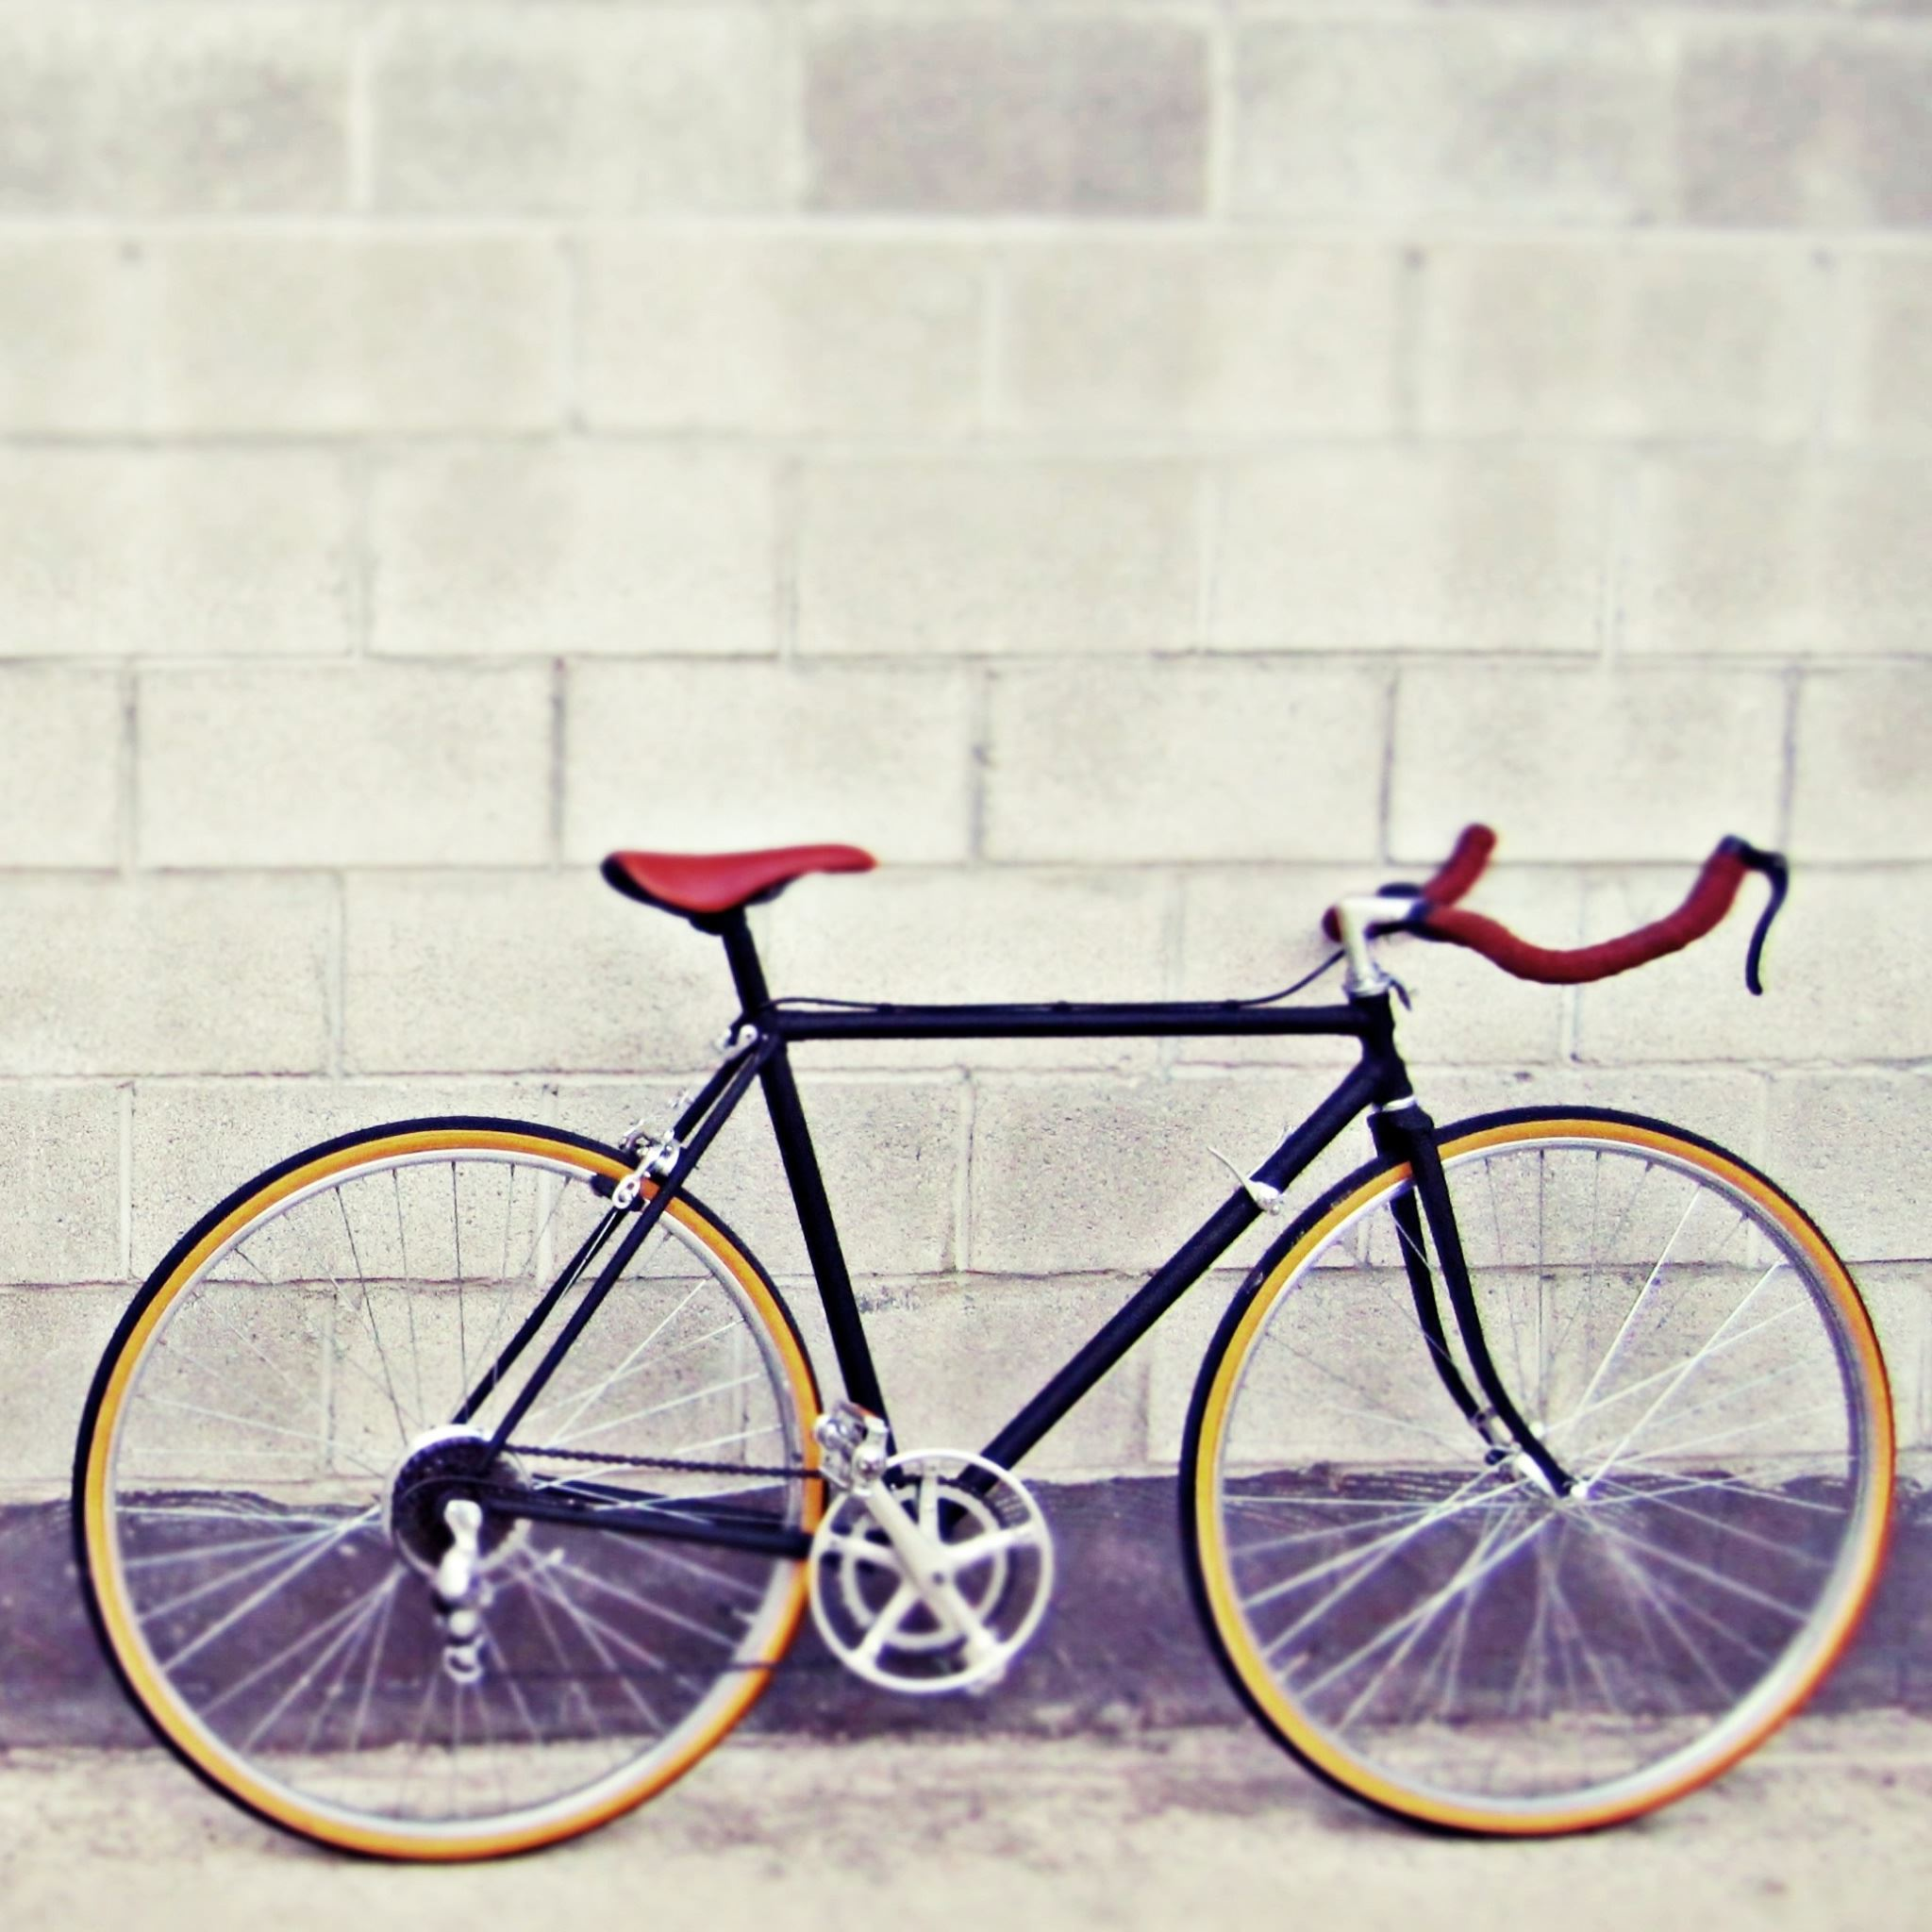 Bicycle 2 iPad Air wallpaper